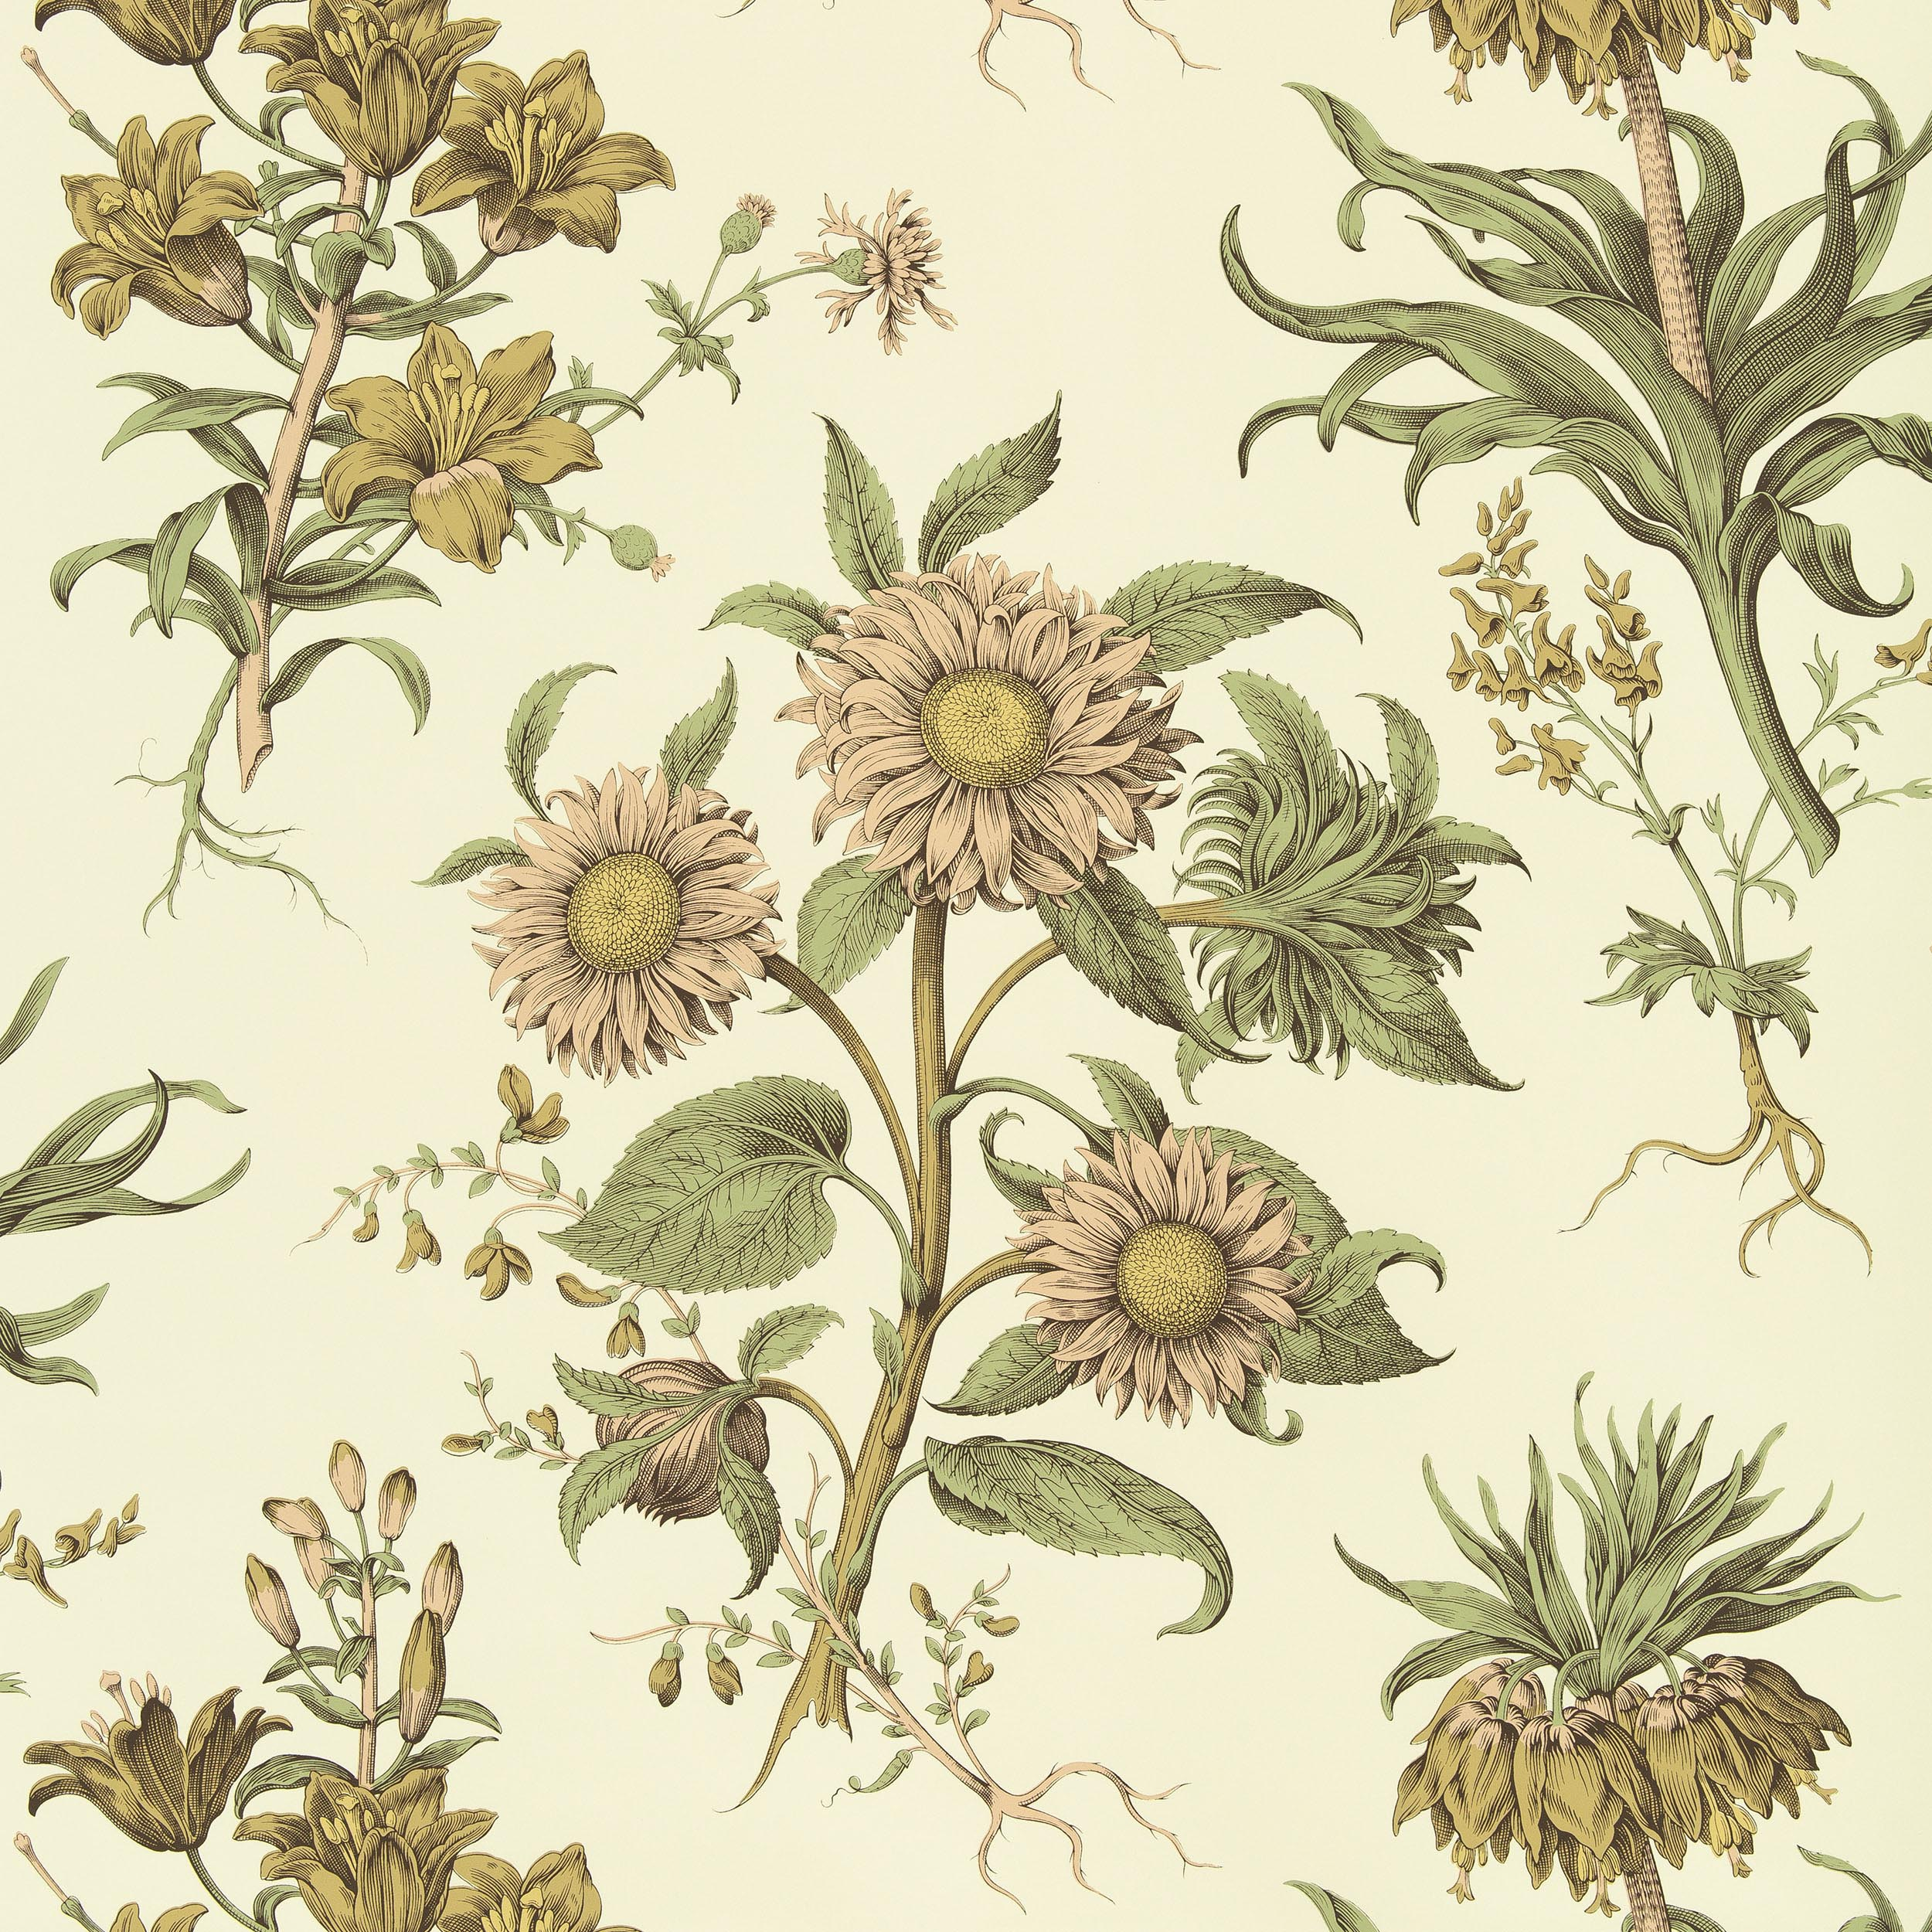 BOTANIQUE SPECTACULAIRE ROSE GREEN 0 Home Designer Wallpaper Collection COWTAN TOUT